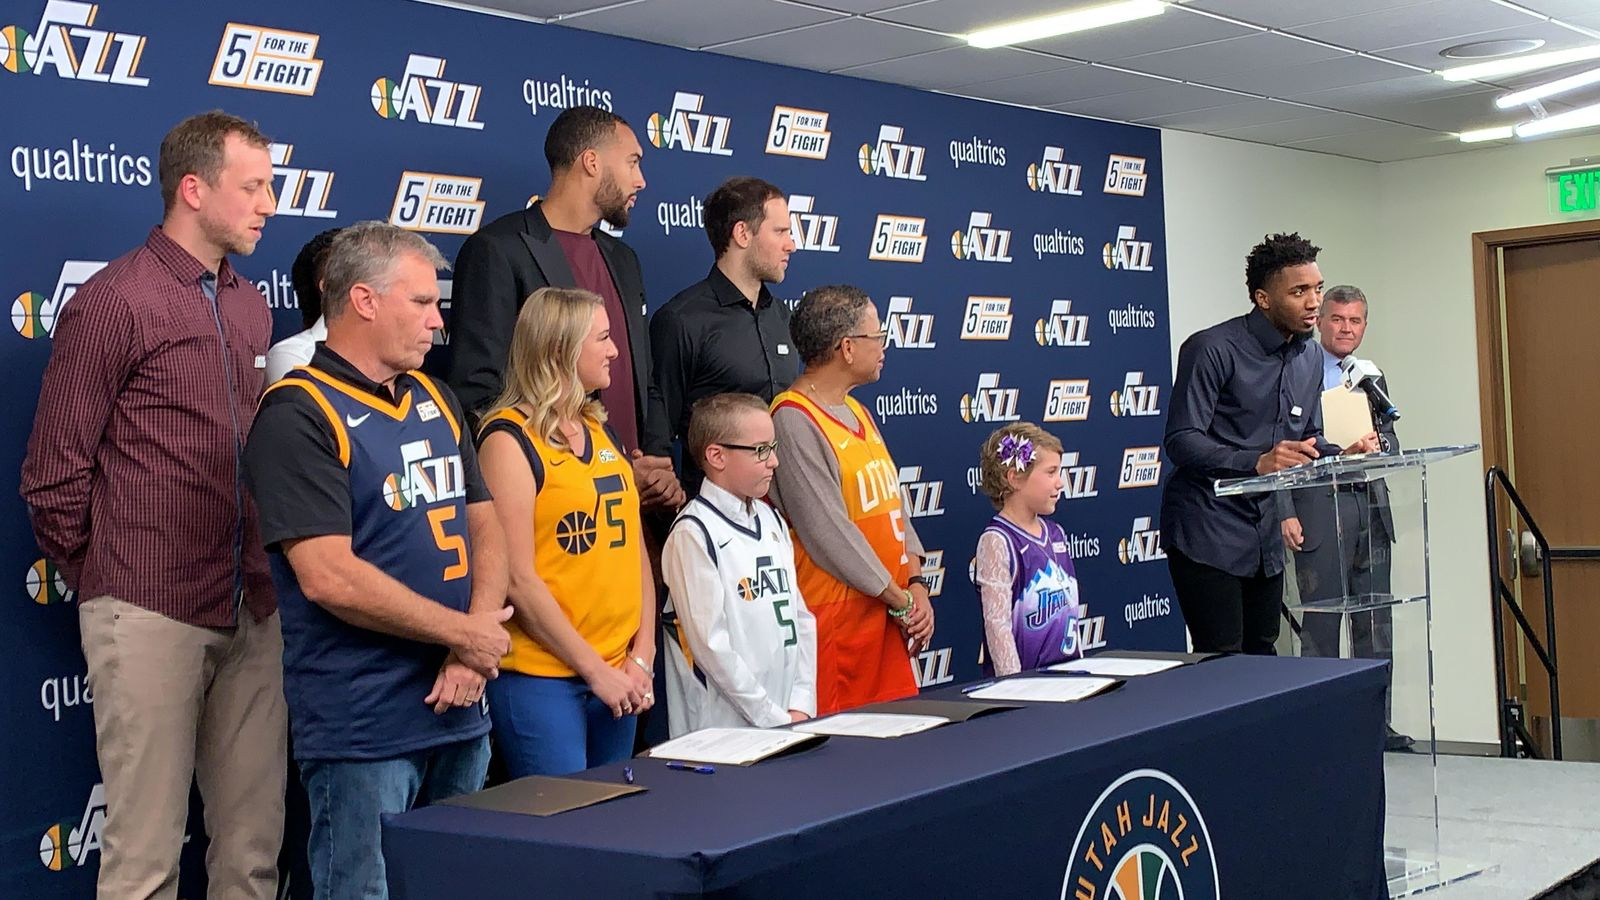 "Everyone poses for a photo op promoting ""5 For The Fight"" which aims to fund cancer research. (L-R) Joe Ingles (Jazz forward), Dave Warren (cancer fighter), Mike Conley (Jazz point guard), Dani Phillips (cancer fighter), Rudy Gobert (2-time Defensive Player of the Year, Utah Jazz Center) with Wyatt Page (young cancer fighter), Emma Houston (cancer fighter), Bojan Bogdanovic (Utah Jazz forward), Baylee Semrow (young cancer fighter) Donovan ""Spida"" Mitchell (Utah Jazz guard) (Photo: Adam Forgie, KUTV)"